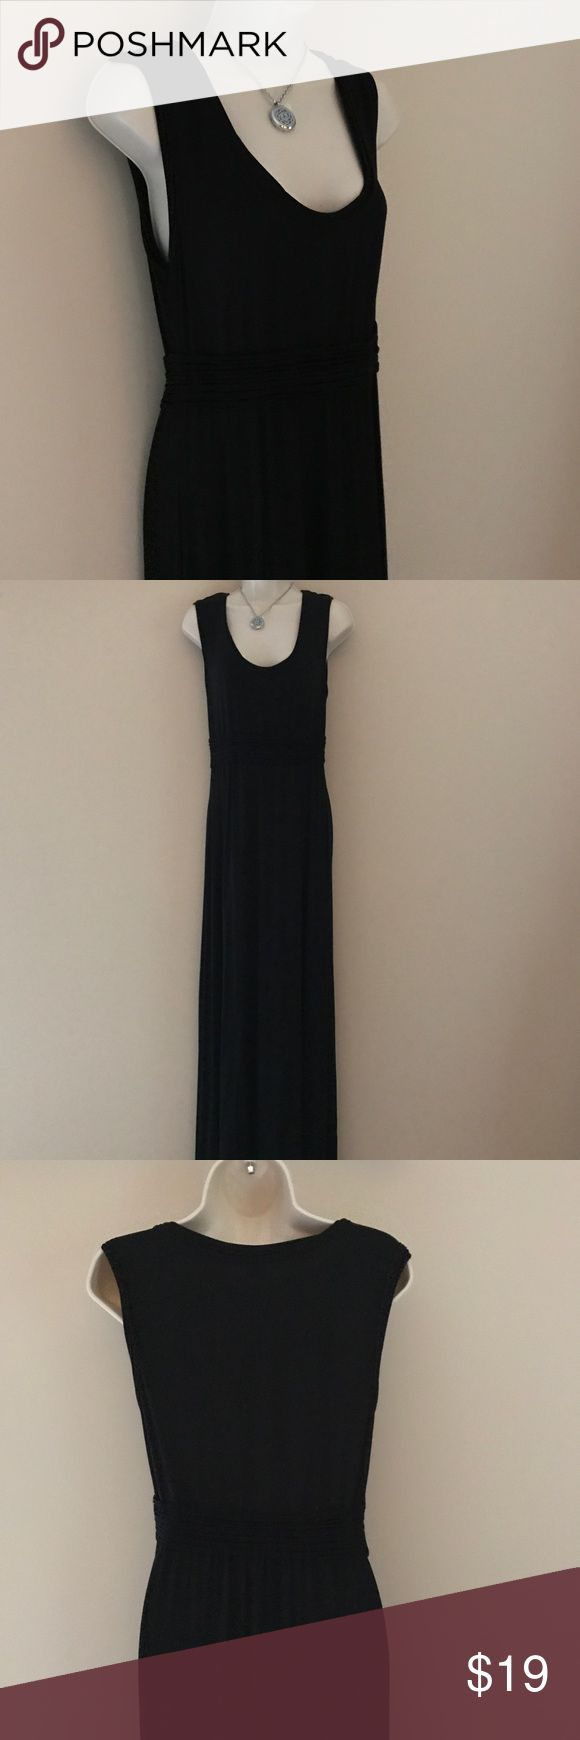 "Flattering Maxi Dress NWOT. Deep scoop neck and empire waist. Flattering ruching along waist. Double hem detail. Measures 60"" shoulder to hem and 18"" across chest (without stretch). Bundle and save! Smoke free home. Sophie Max Dresses Maxi"